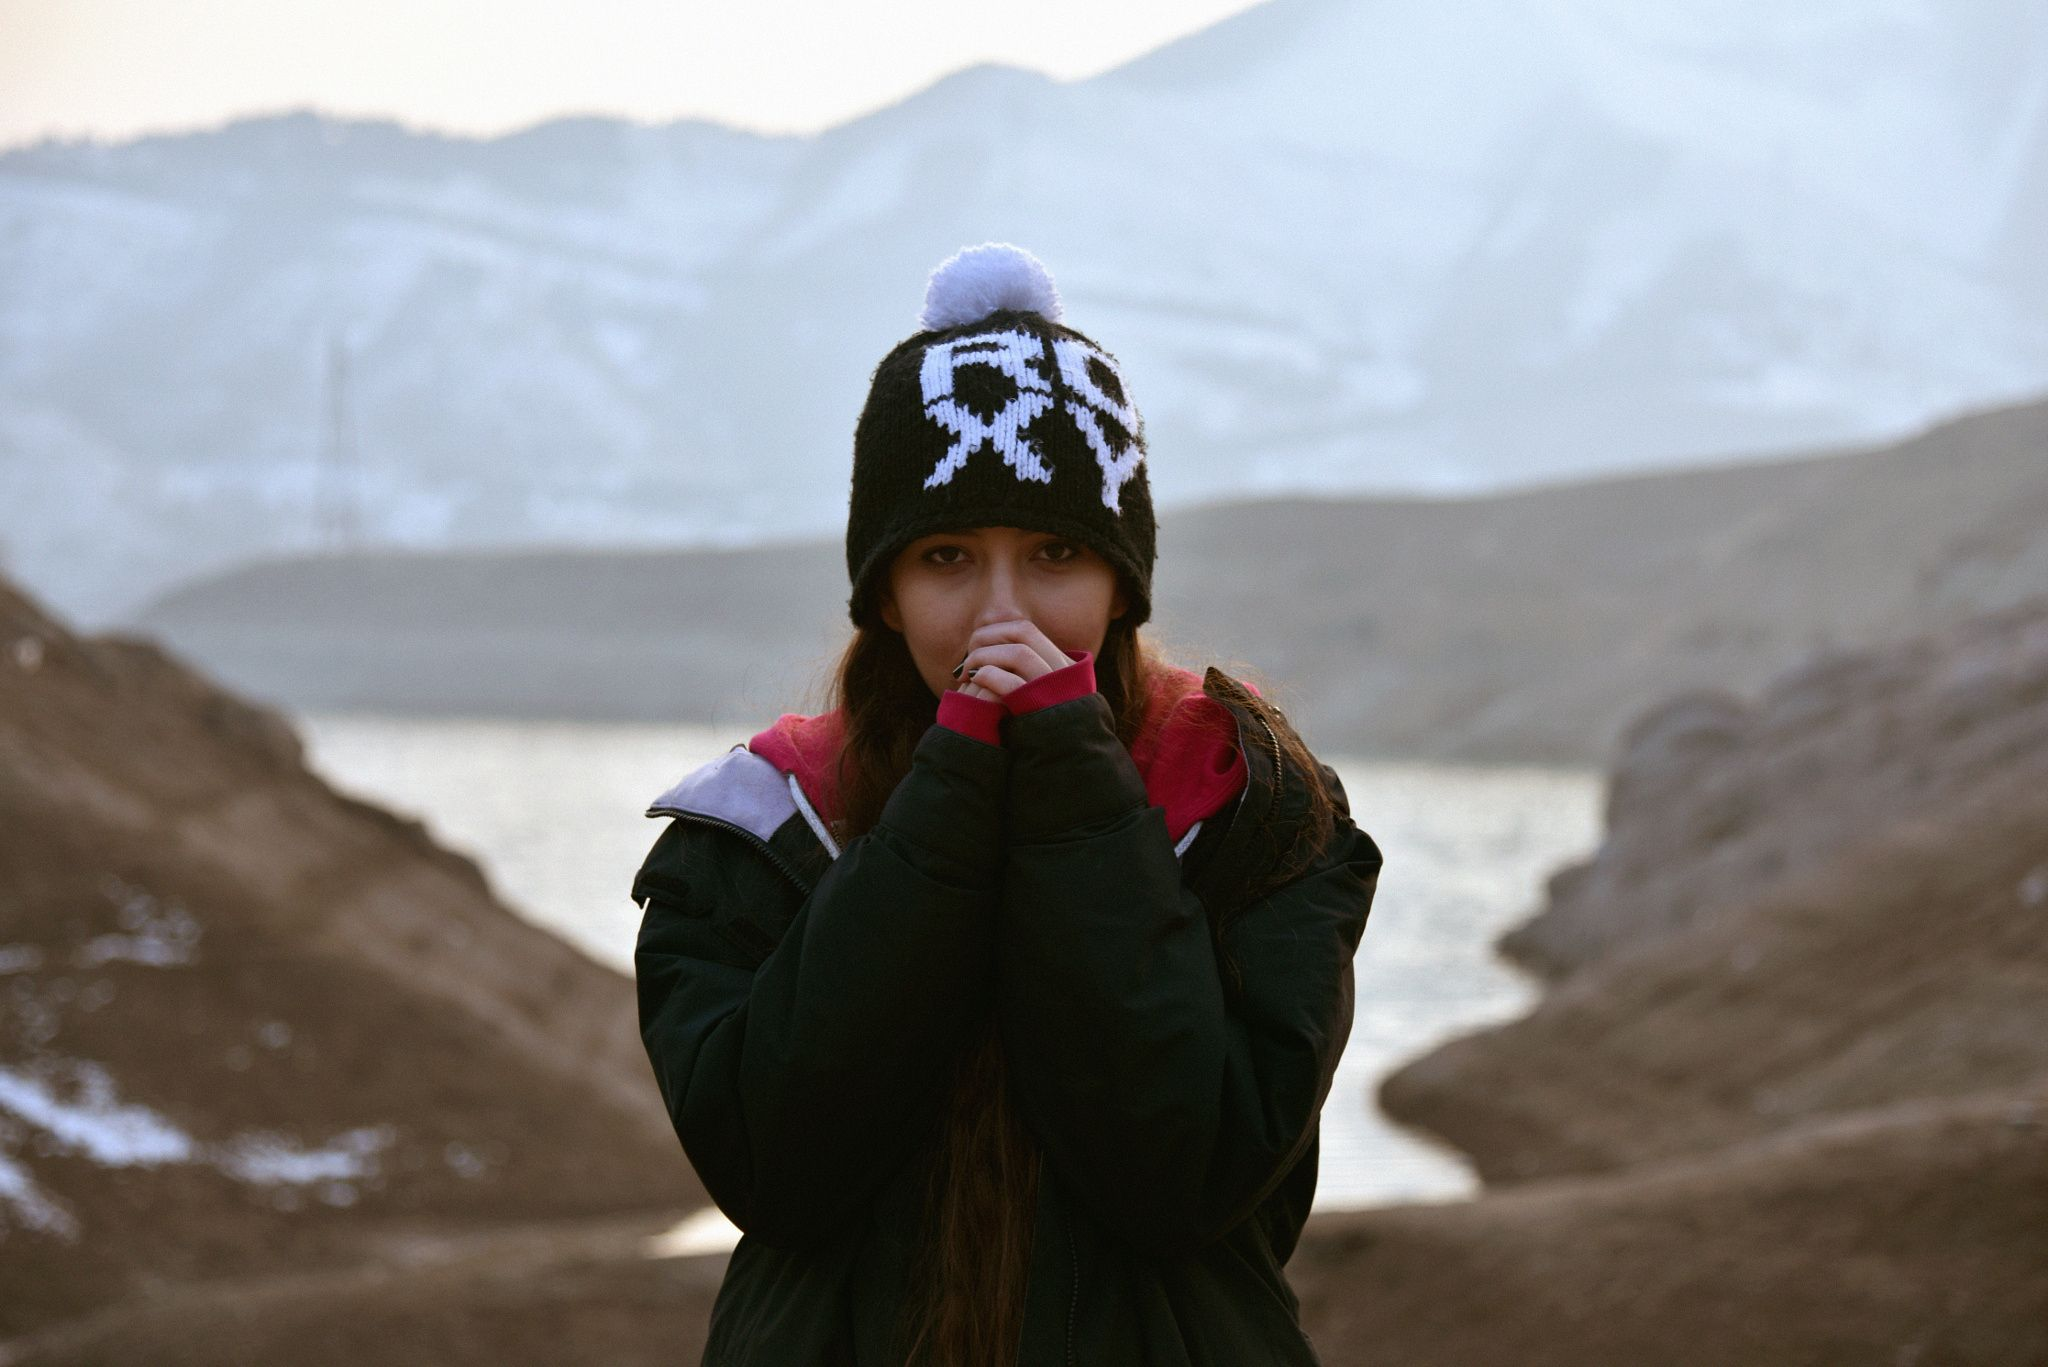 gla·cial - photo by Sepideh Farvardin #500px #portrait #girl #glacial #Mood #icy